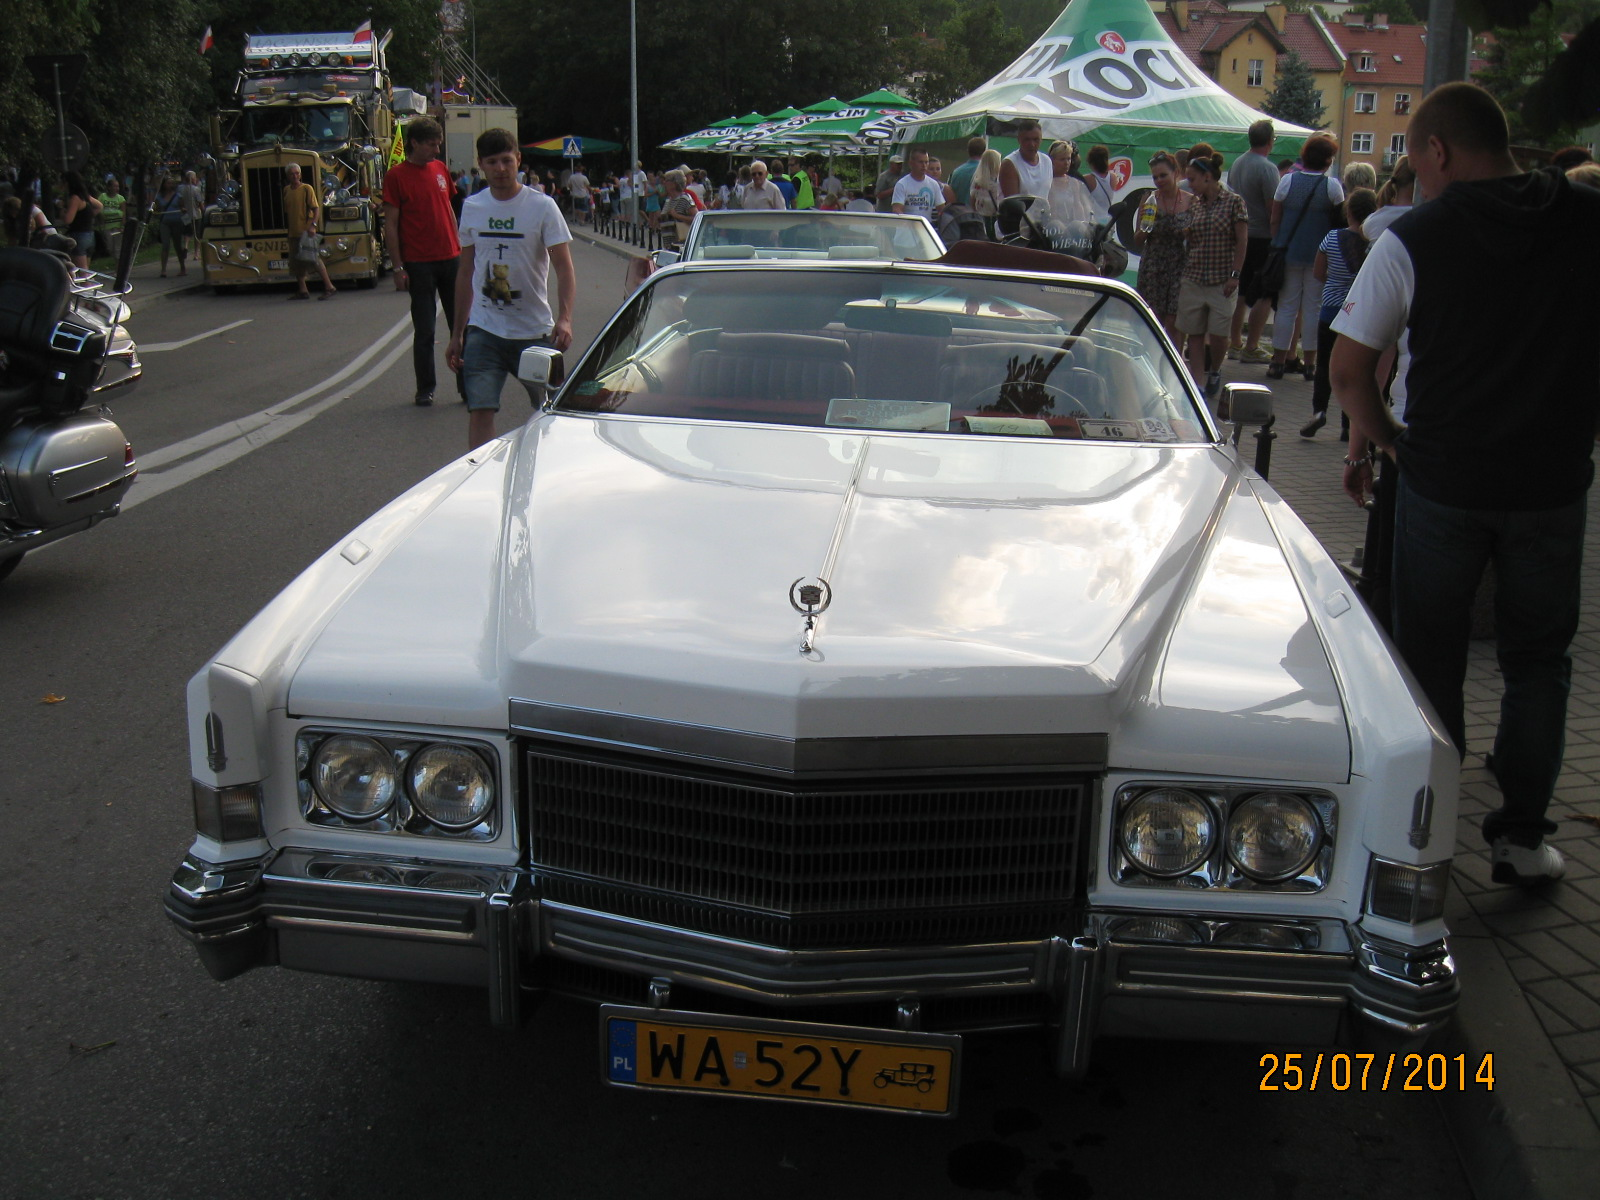 http://124coupe.pl/hosting/images/img2837.jpg